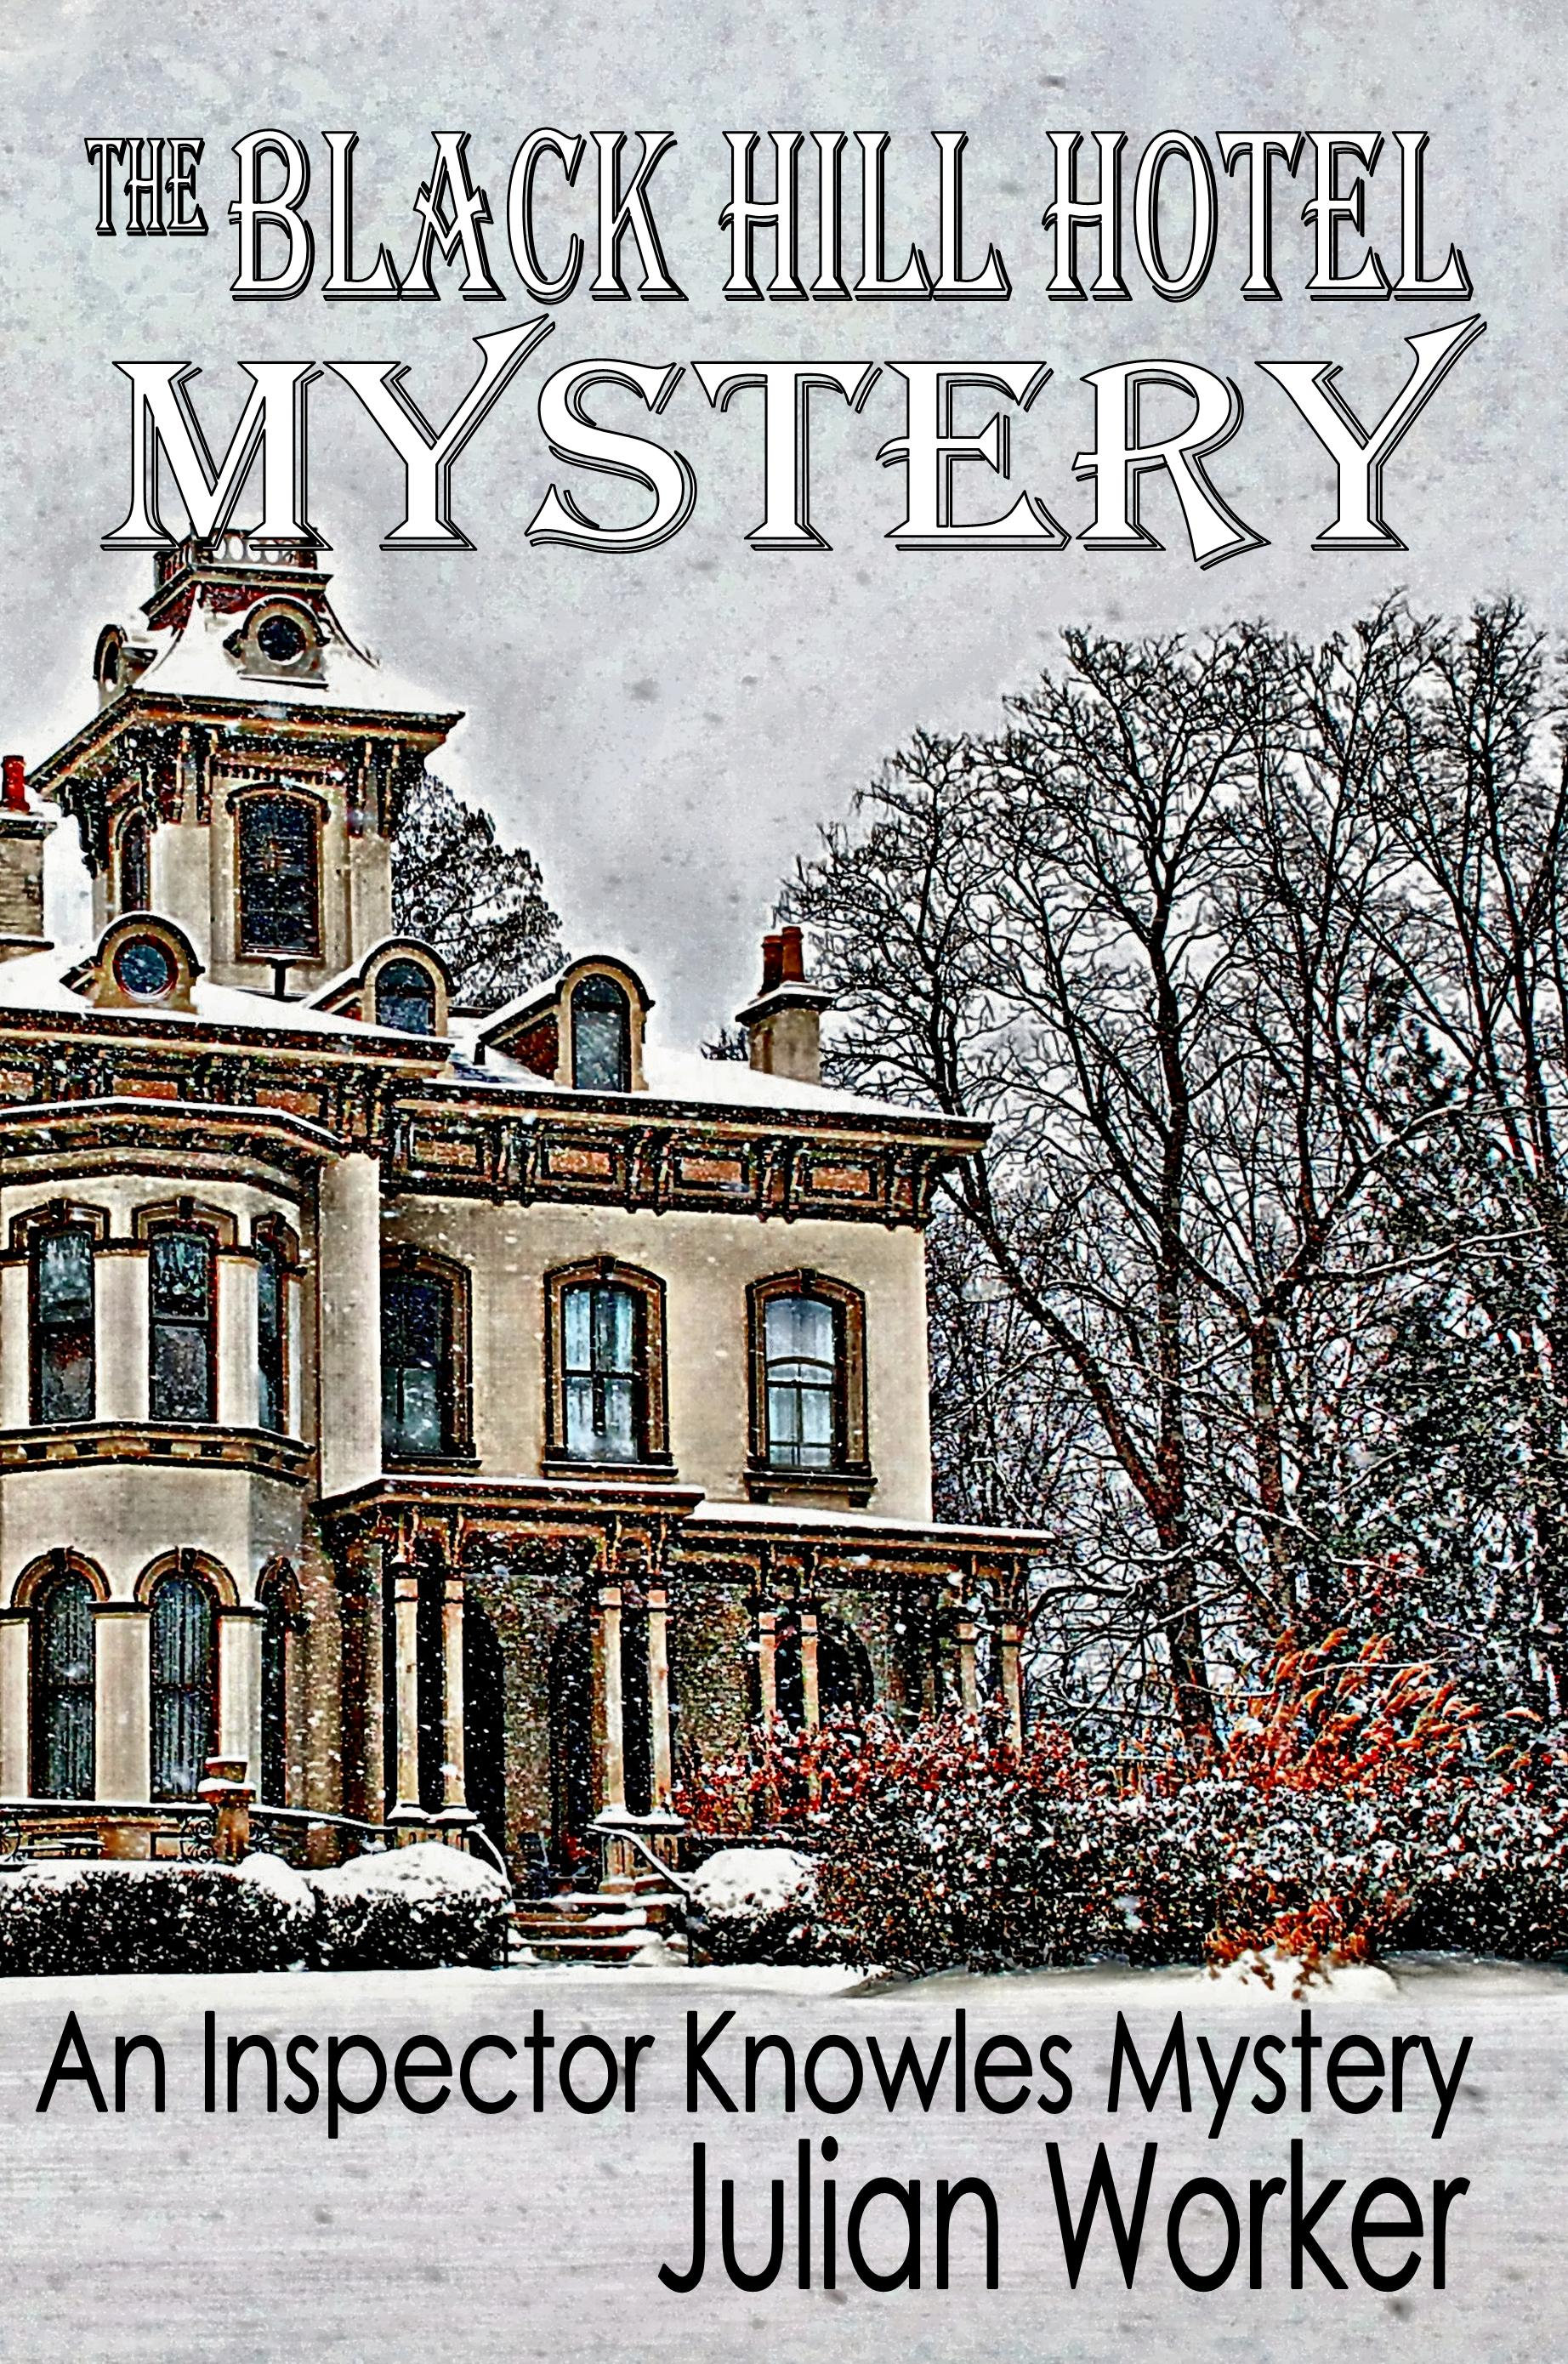 The Black Hill Hotel Mystery – 67